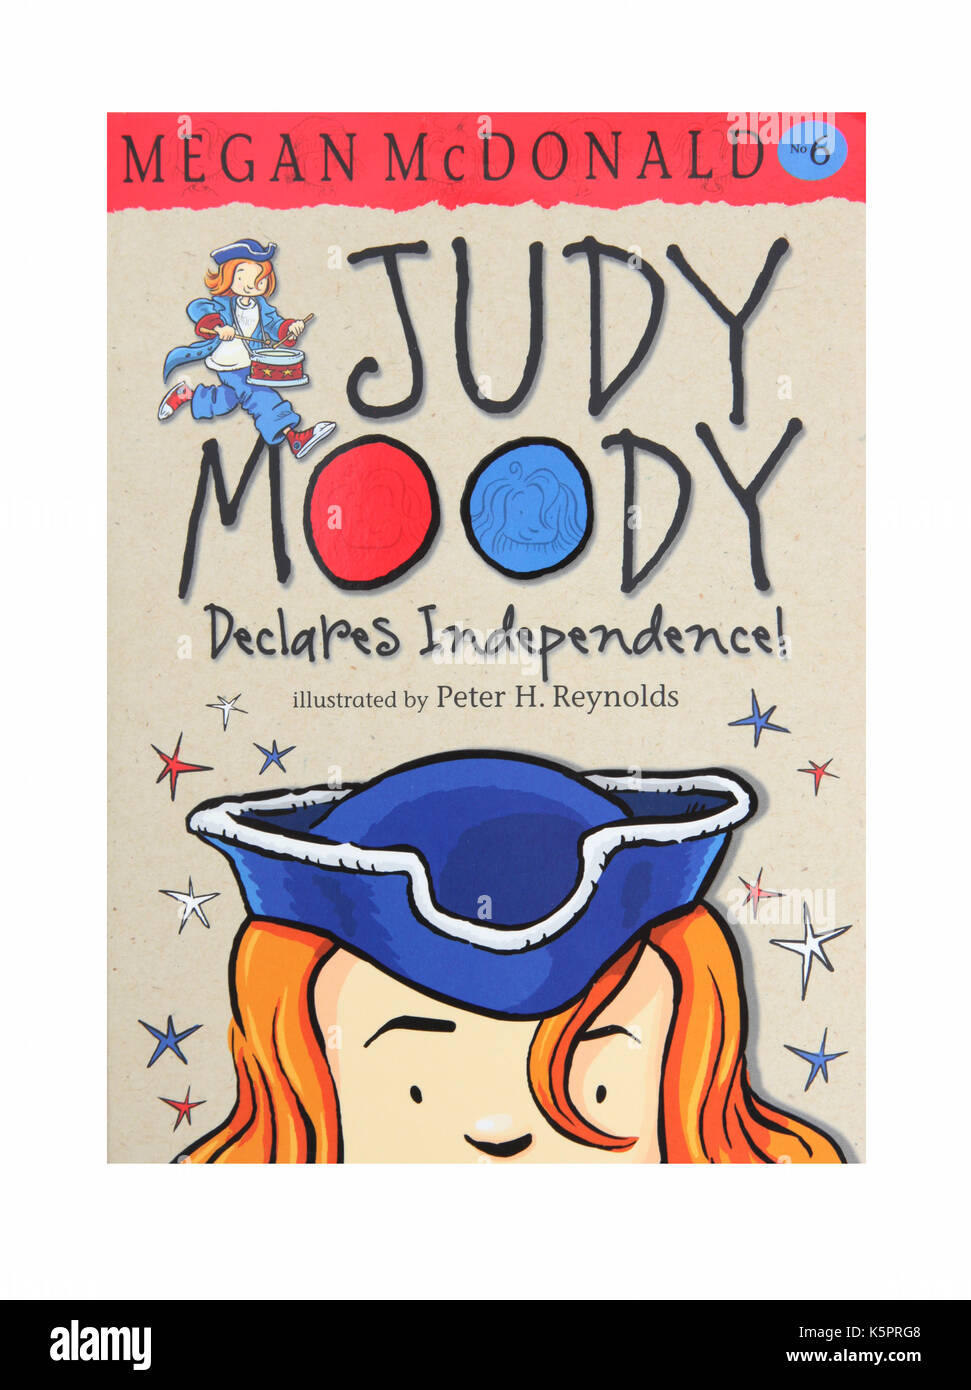 The book Judy Moody Declares Independence by Megan McDonald - Stock Image